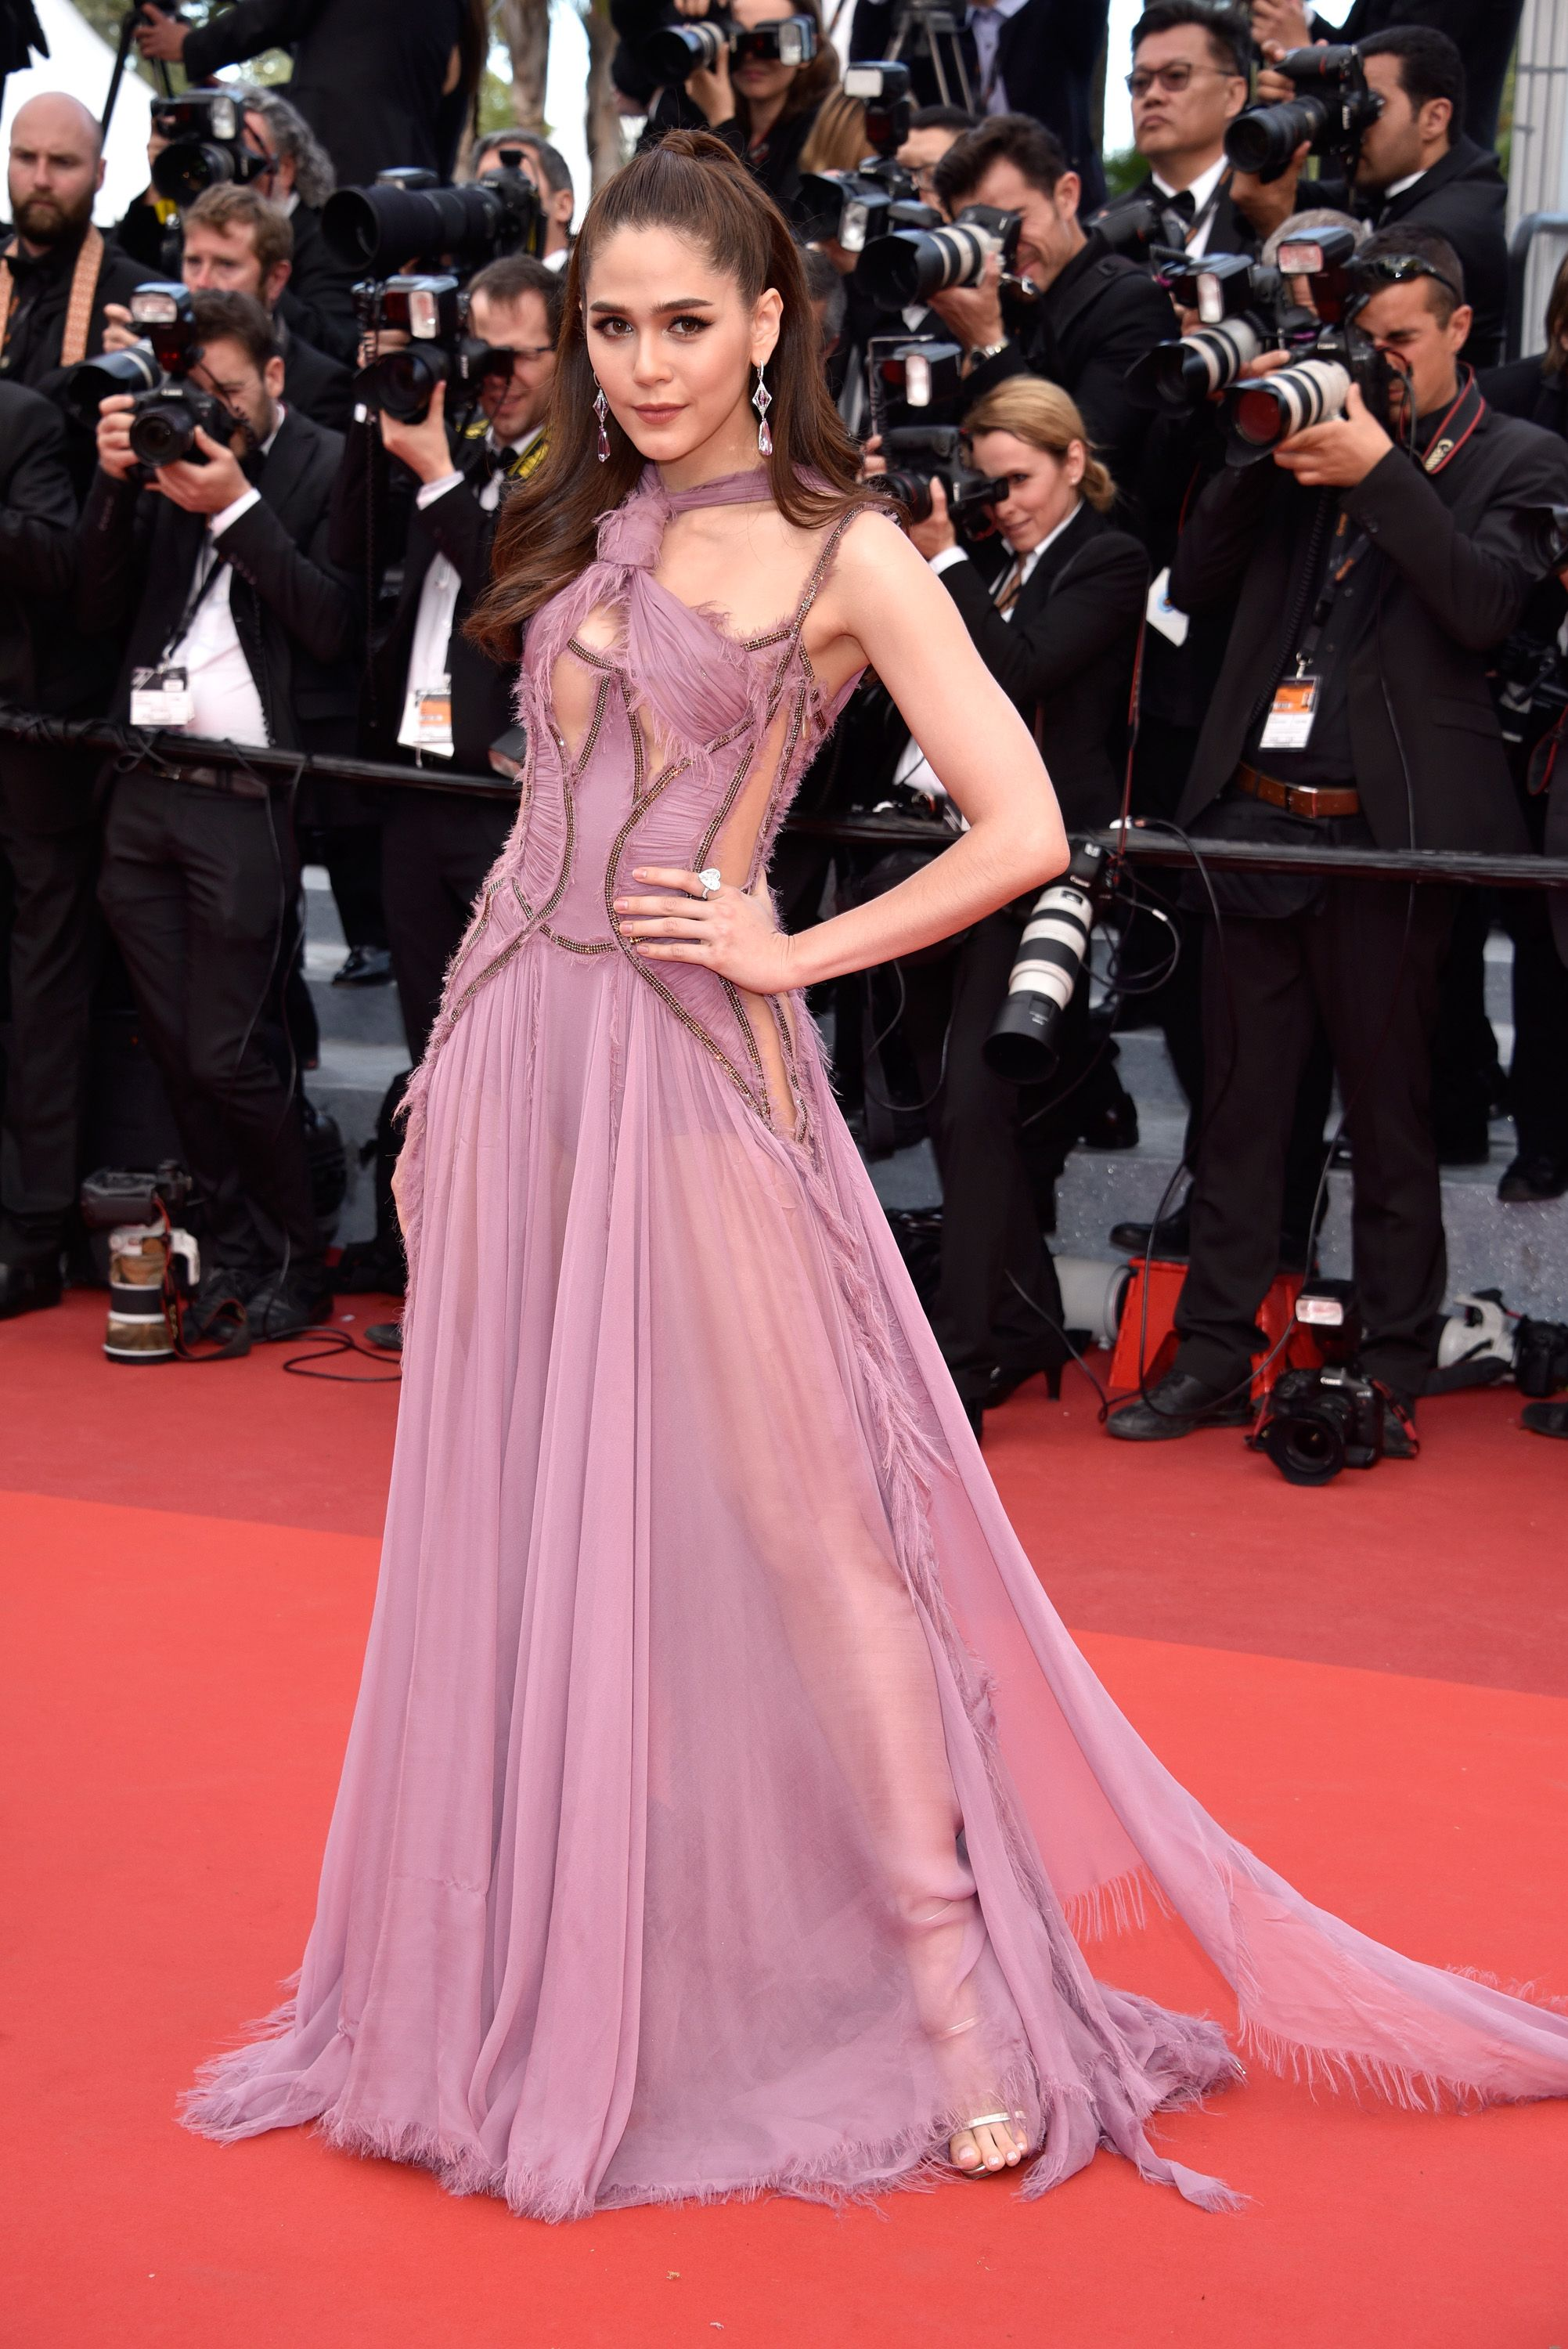 Best red carpet dresses - The Best Red Carpet Looks From Cannes